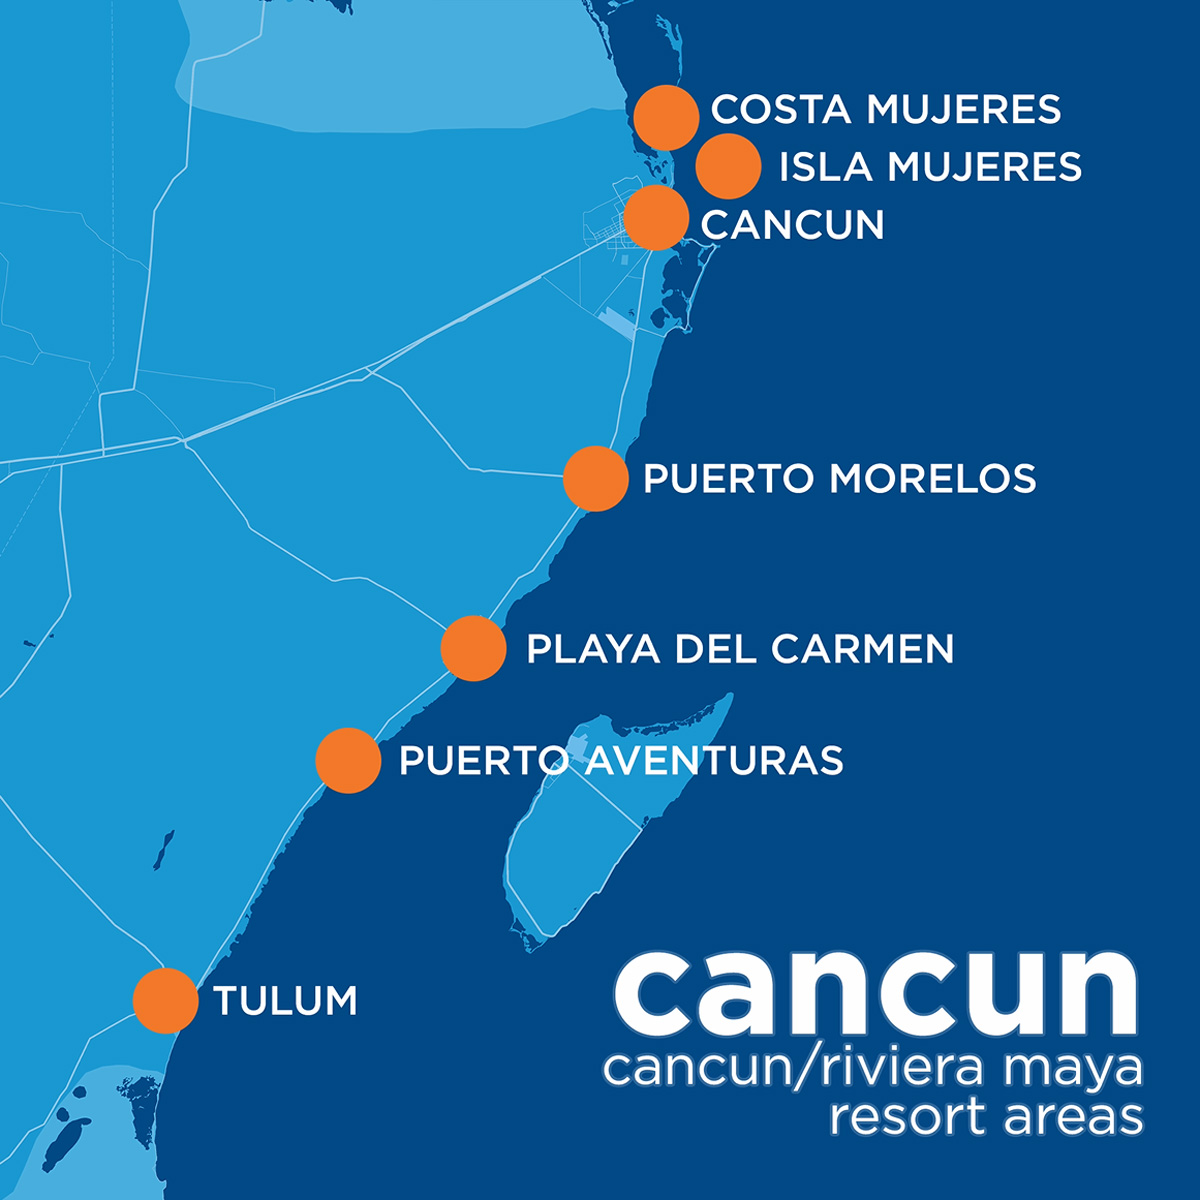 A Travel Guide to the Resort Areas of Cancun/Riviera Maya